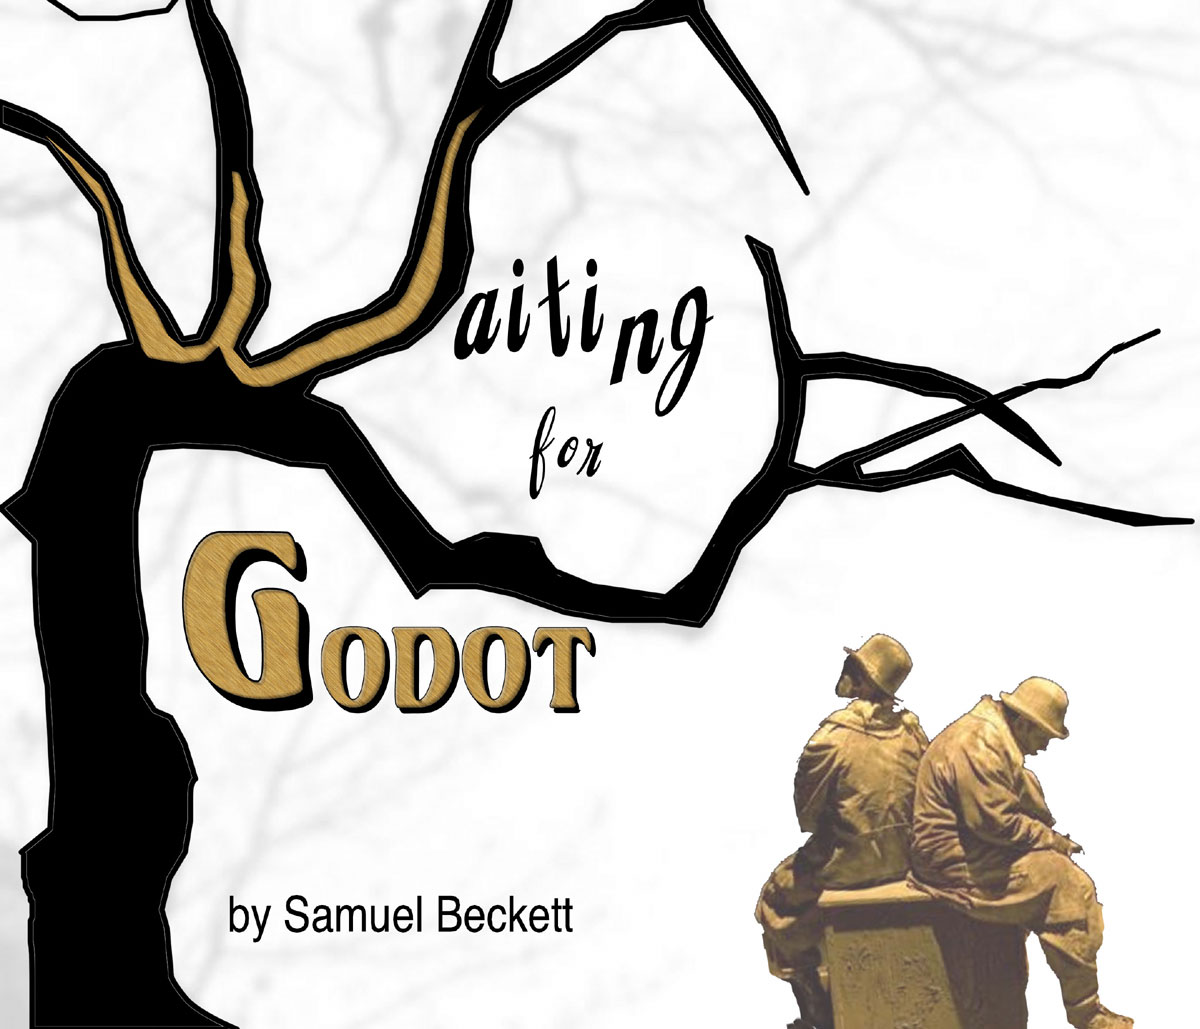 an analysis of samuel becketts waiting for godot Waiting for godot/coles notes by beckett and a great selection of similar used, new and collectible books available now at abebookscom.